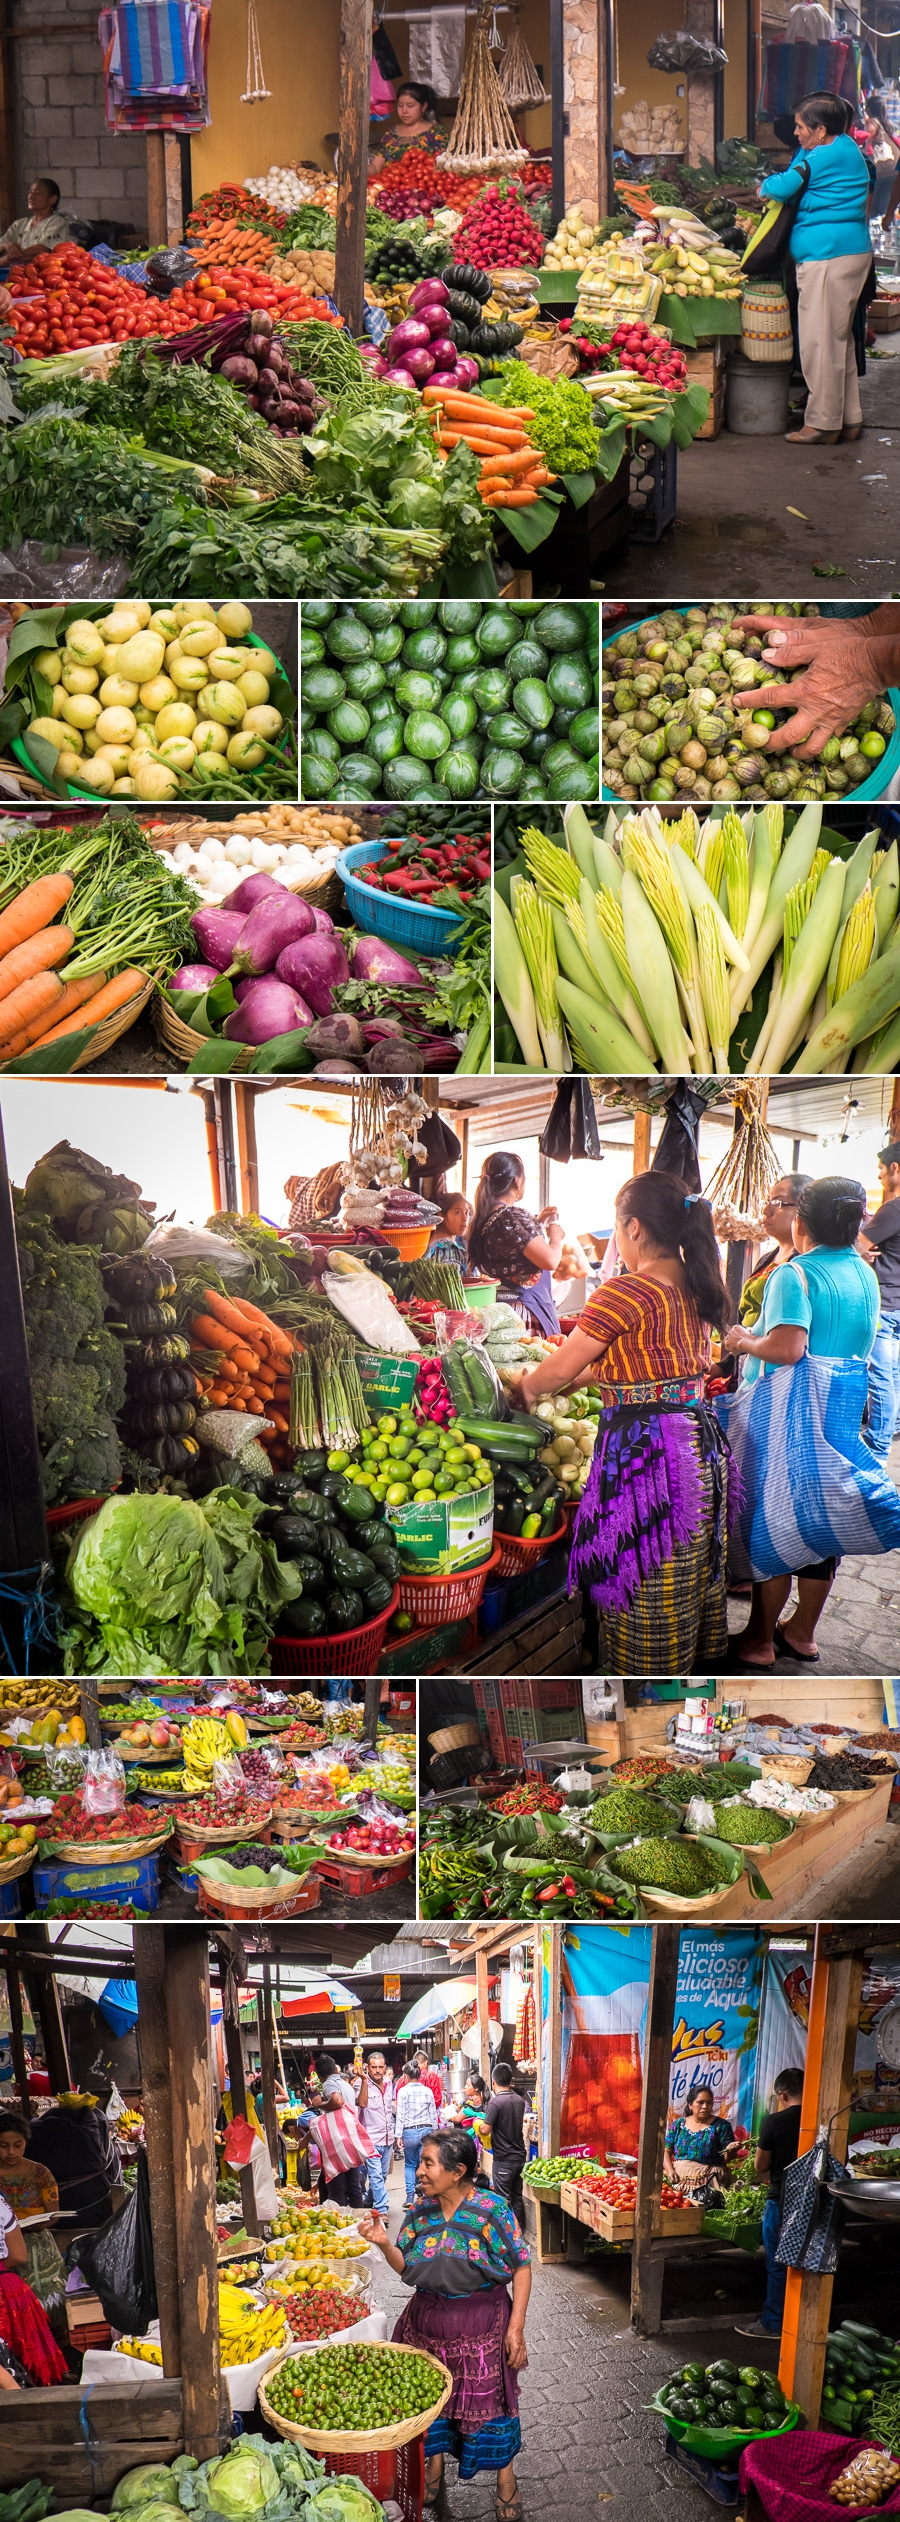 antigua market - food